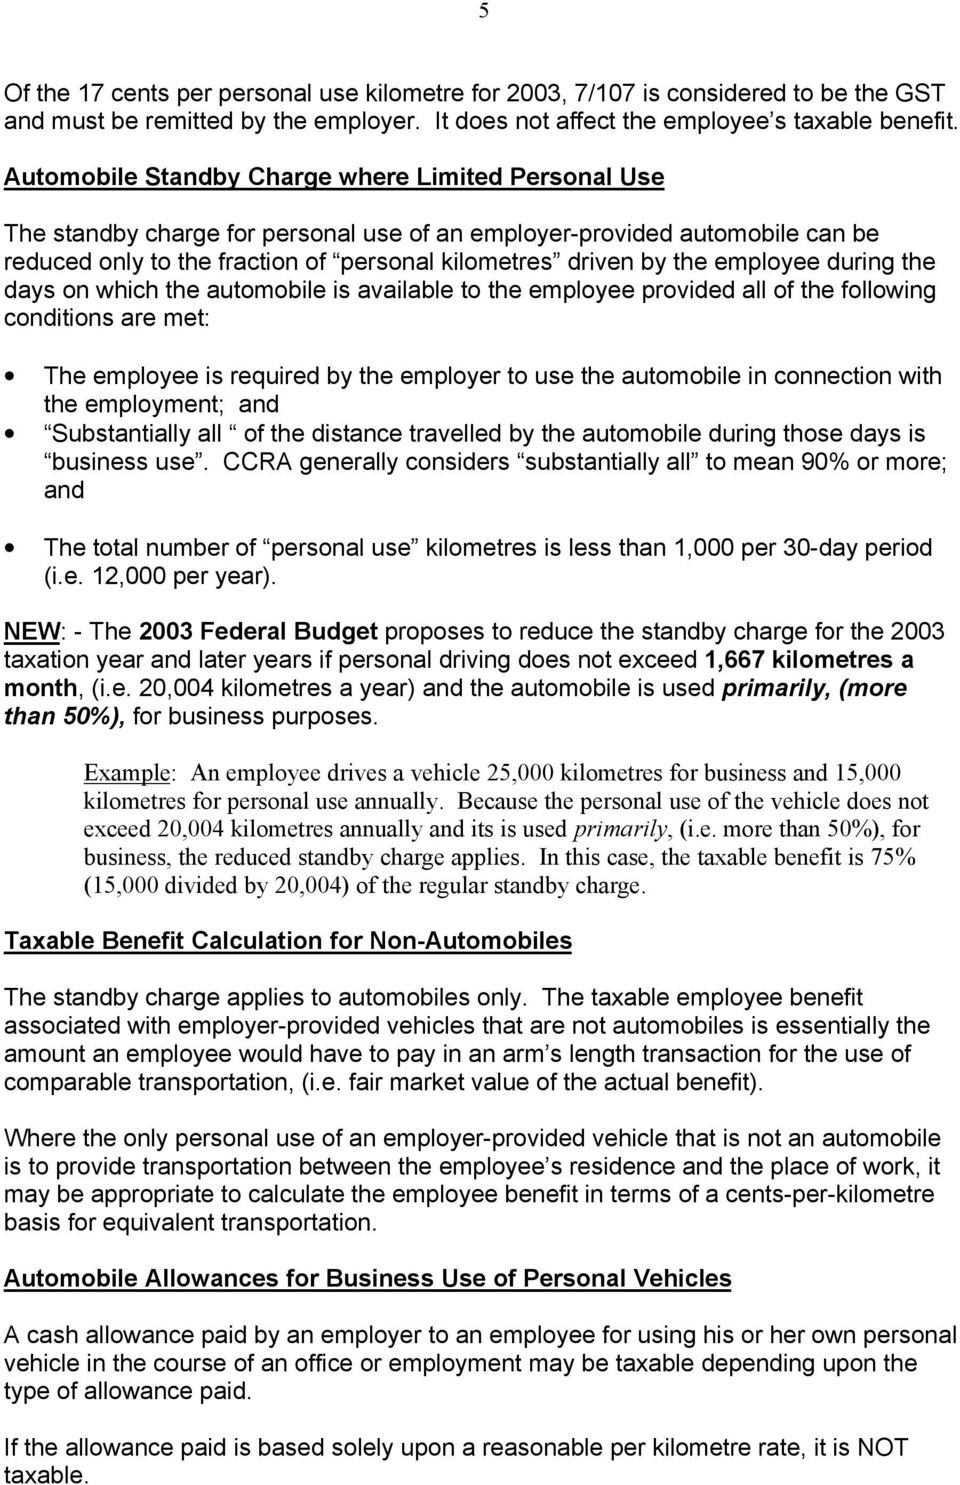 employee during the days on which the automobile is available to the employee provided all of the following conditions are met: The employee is required by the employer to use the automobile in